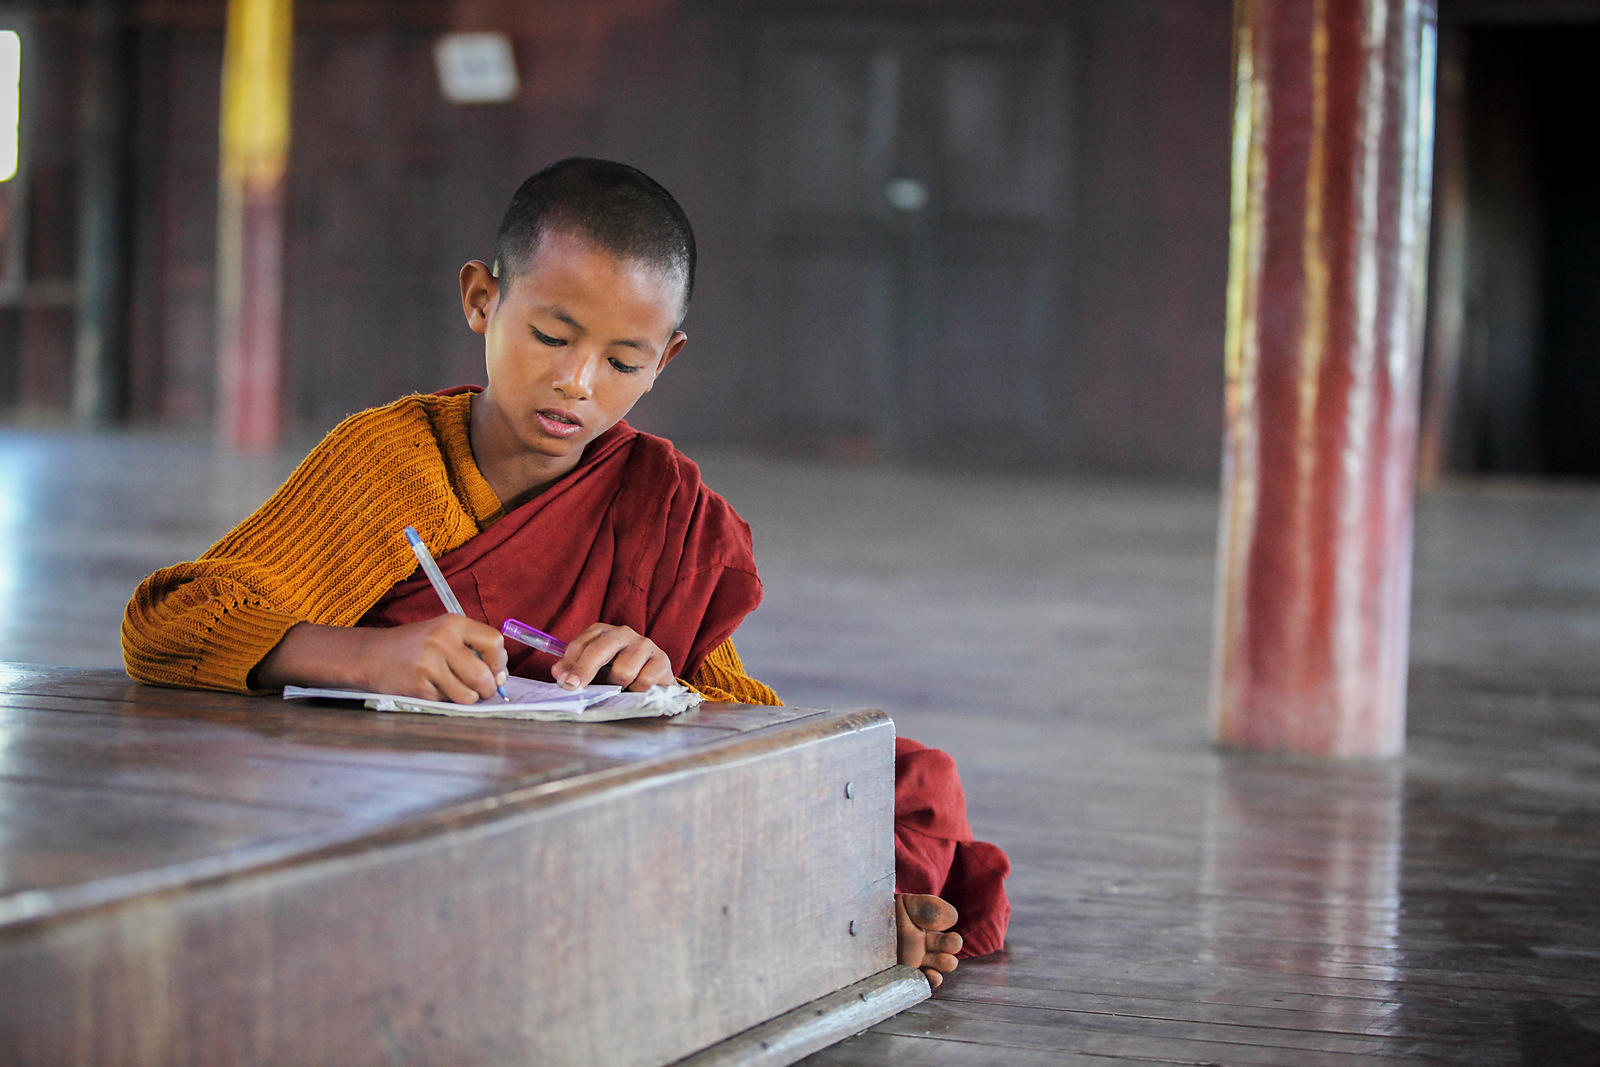 Nahosu, 8 ans, moine novice révisant ses leçons Monastère de Nyaungshwe, Birmanie / Nahosu, 8, novice monk reviewing his less...